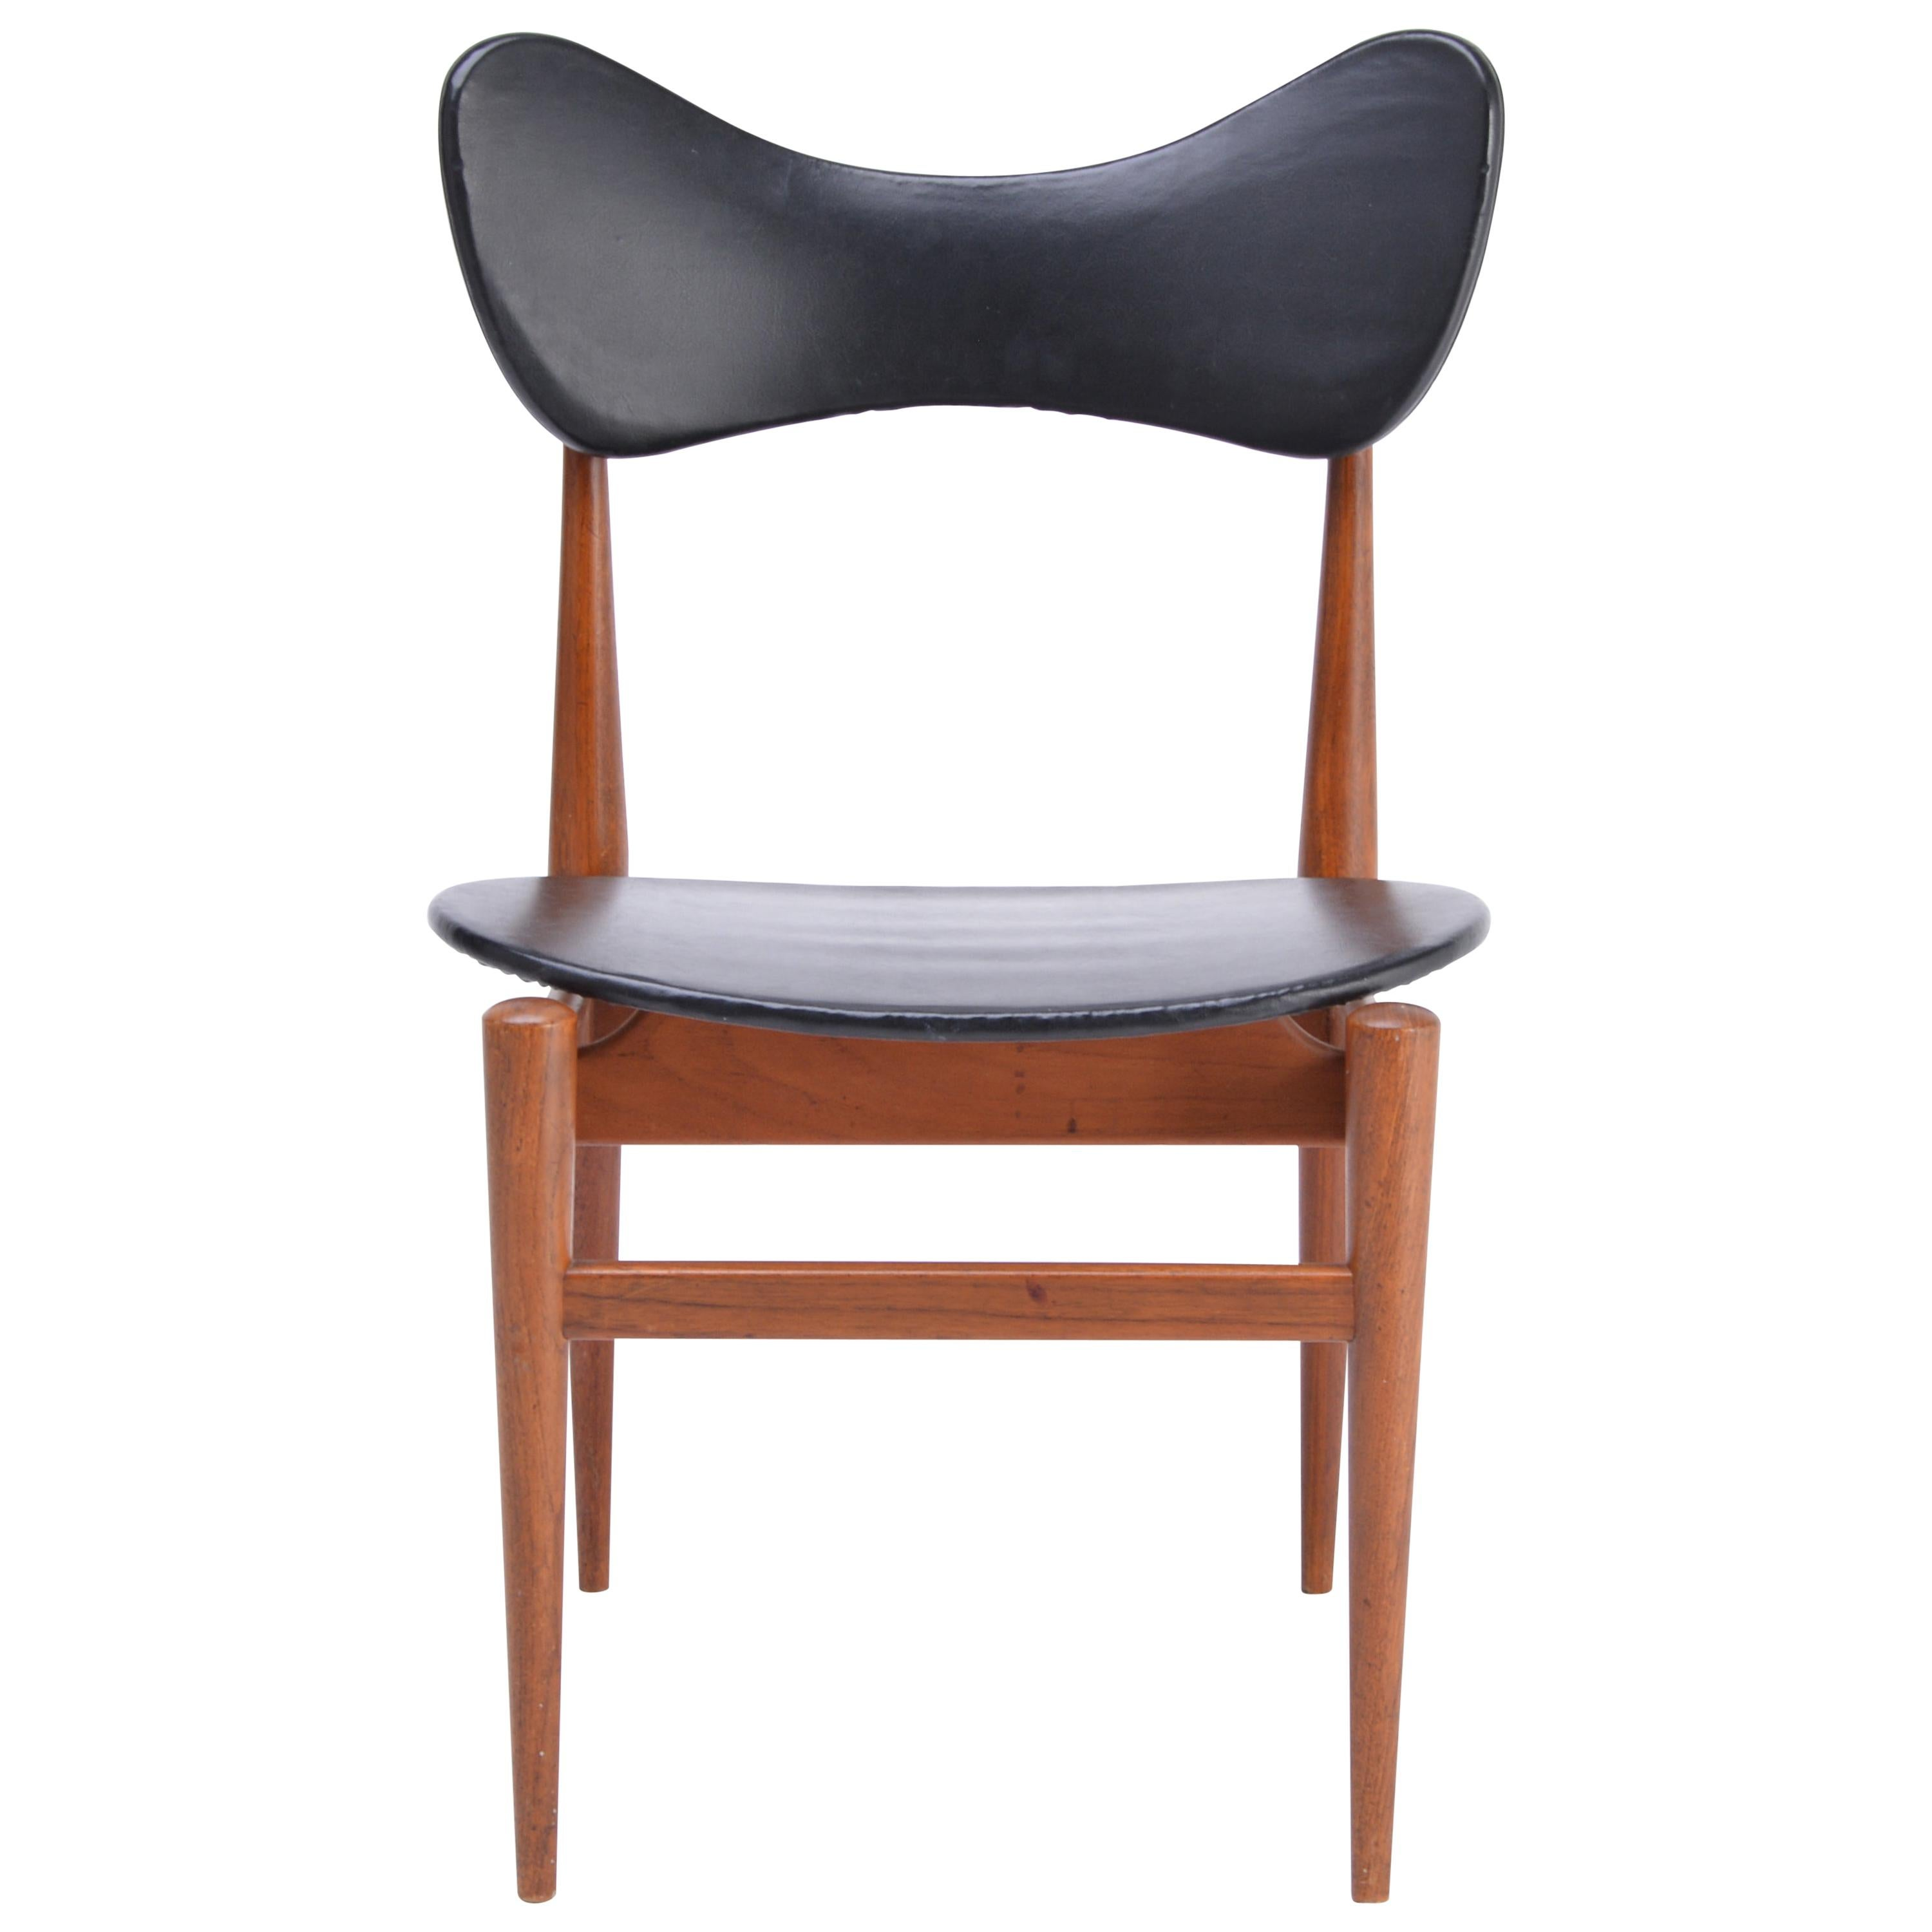 Rare Mid-Century Modern Butterfly chair by Inge & Luciano Rubino, 1963